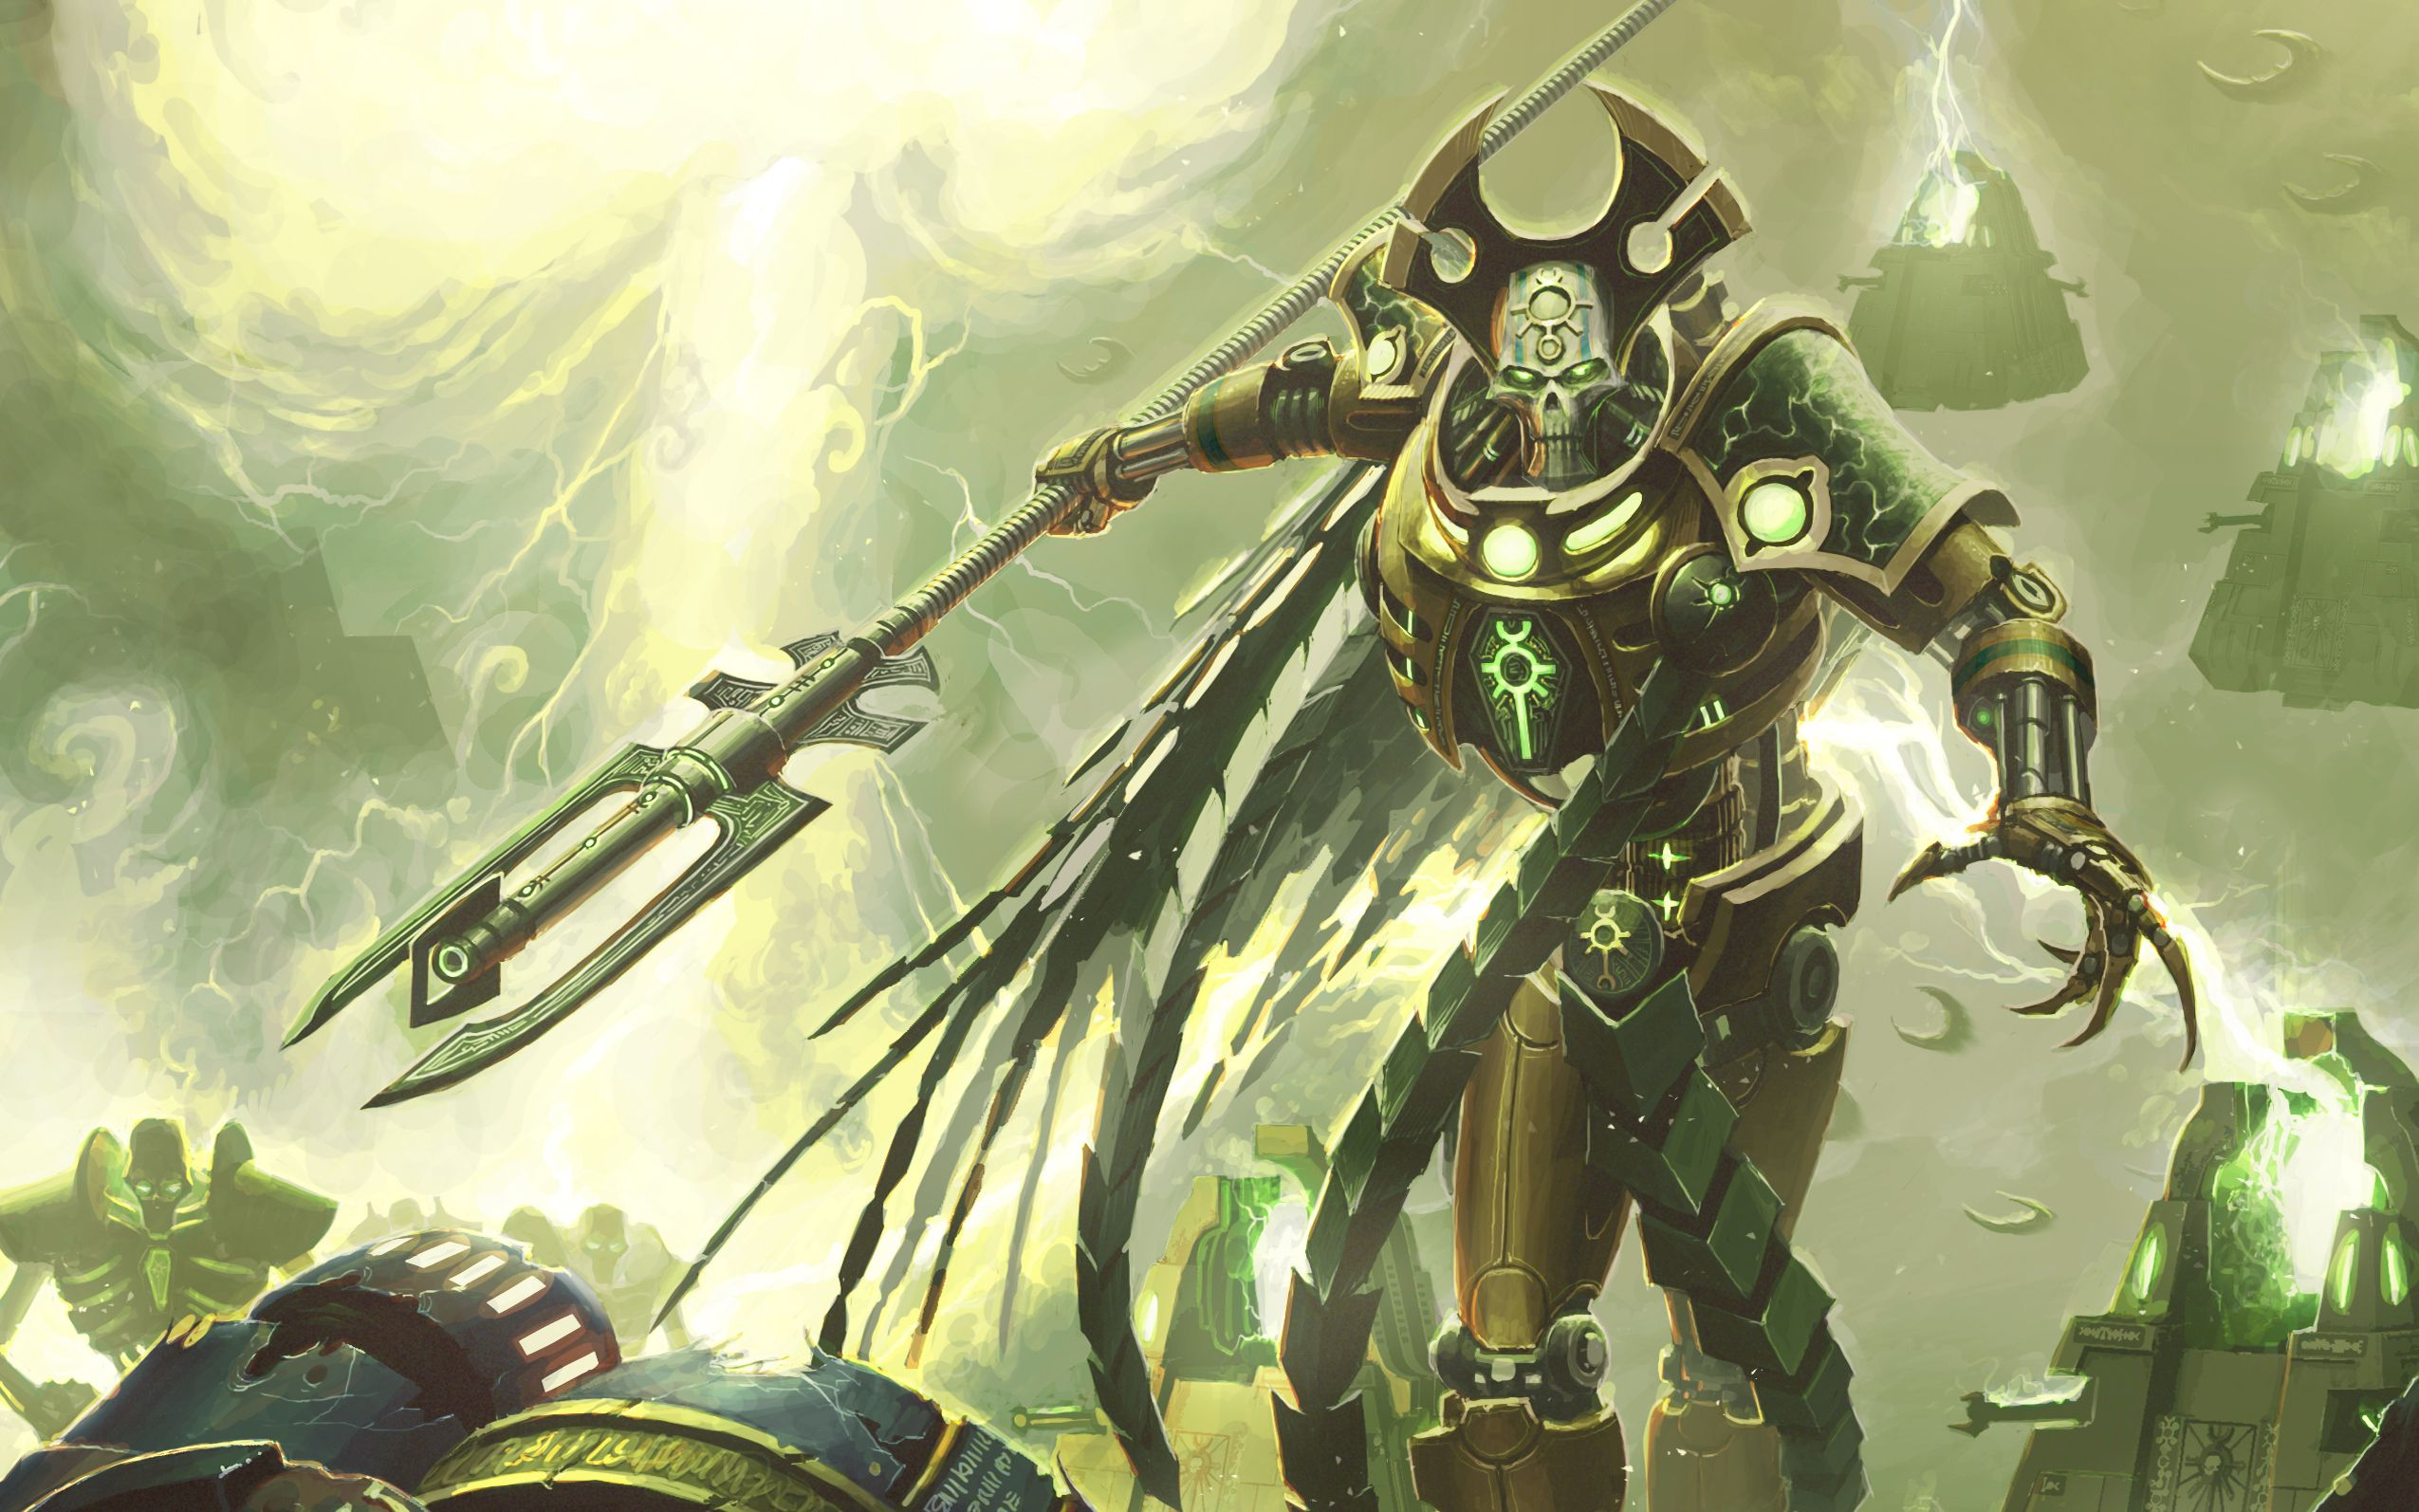 Pin By Eric Brenders On Warhammer 40k Necron Warhammer Warhammer 40k Necrons